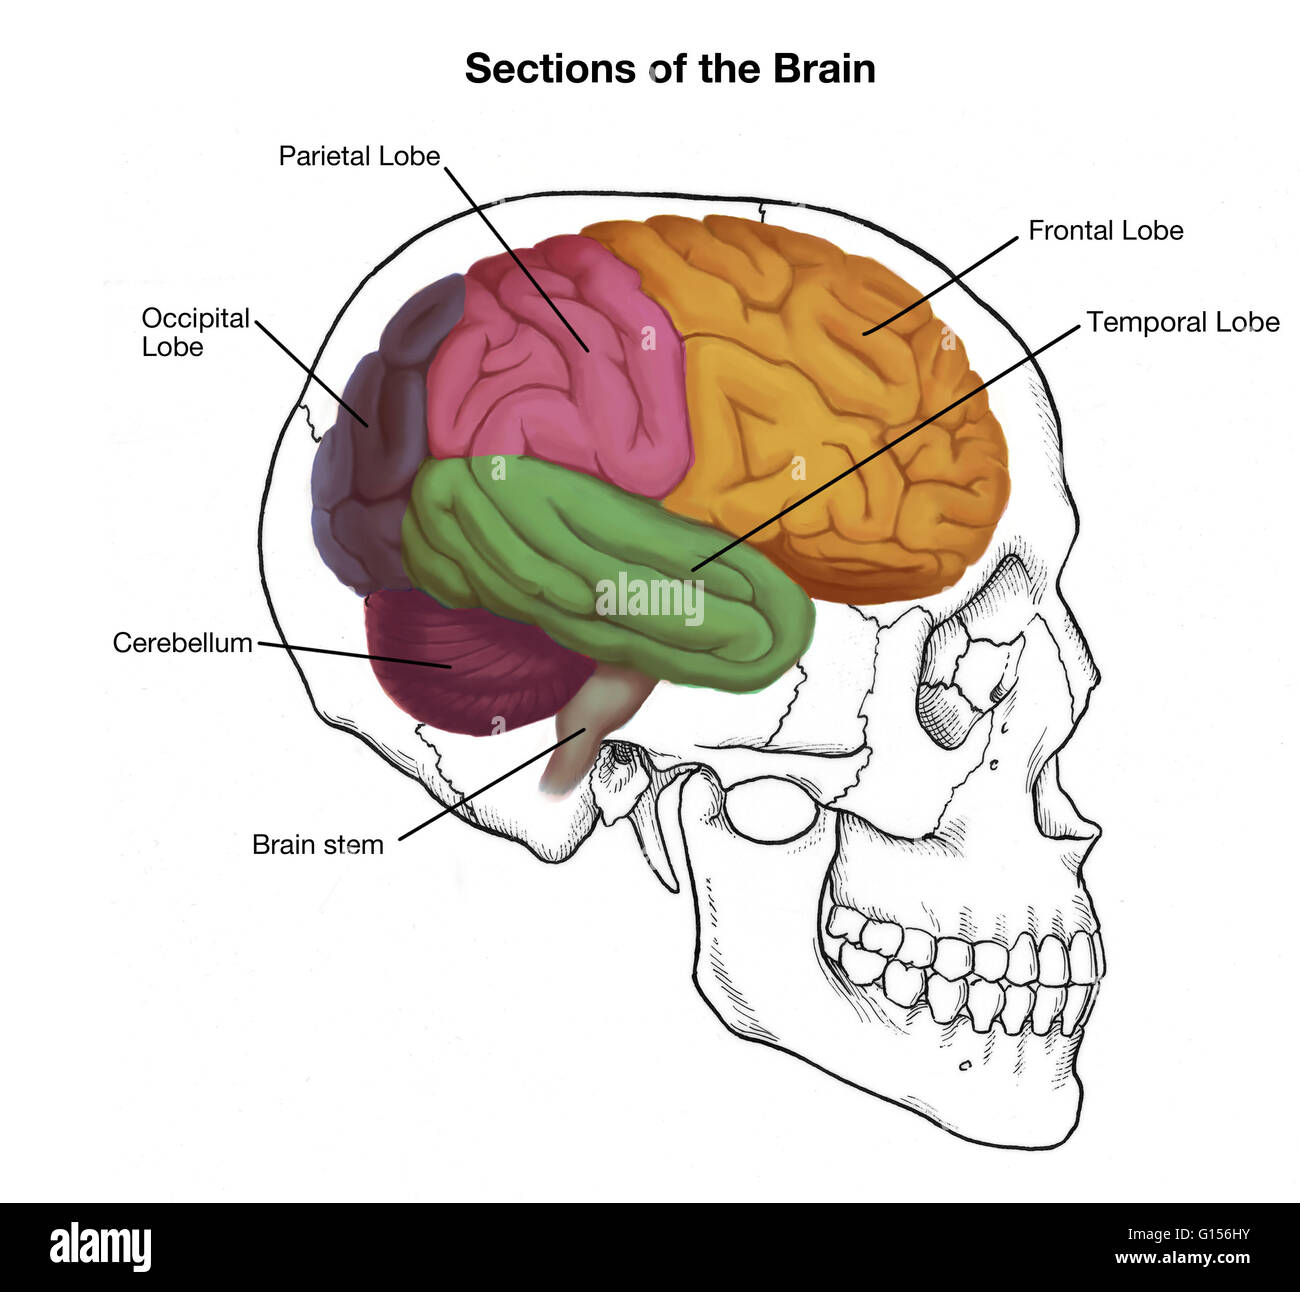 illustration of a human skull and brain, with important sections Shark Brain Diagram illustration of a human skull and brain, with important sections labeled